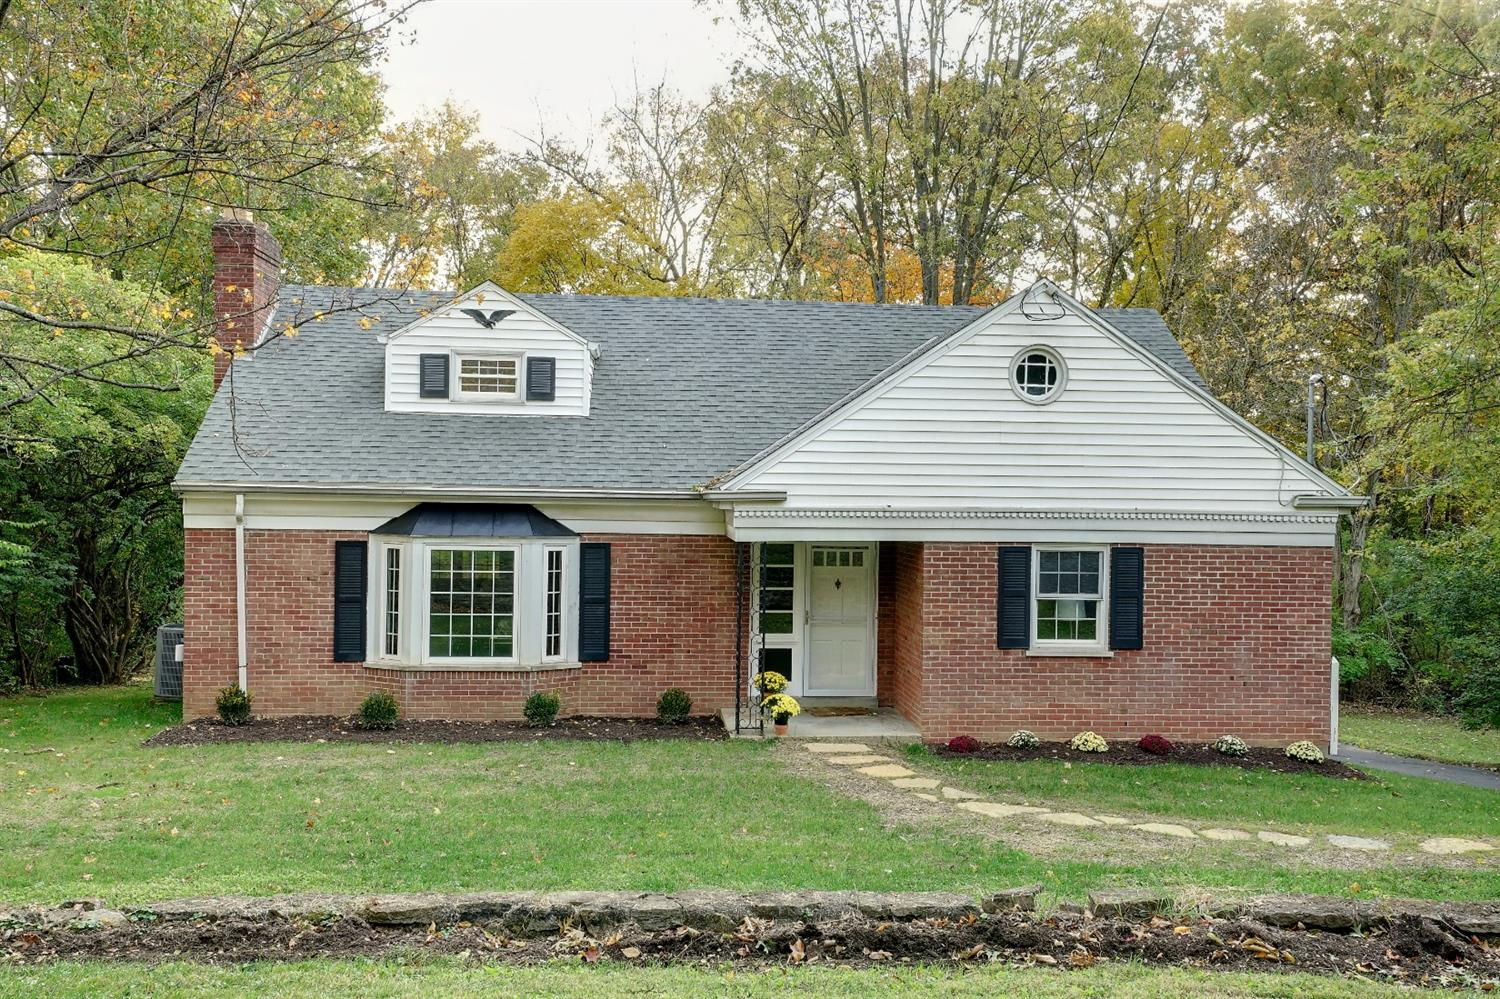 4892 Marieview Ct Kenwood, OH